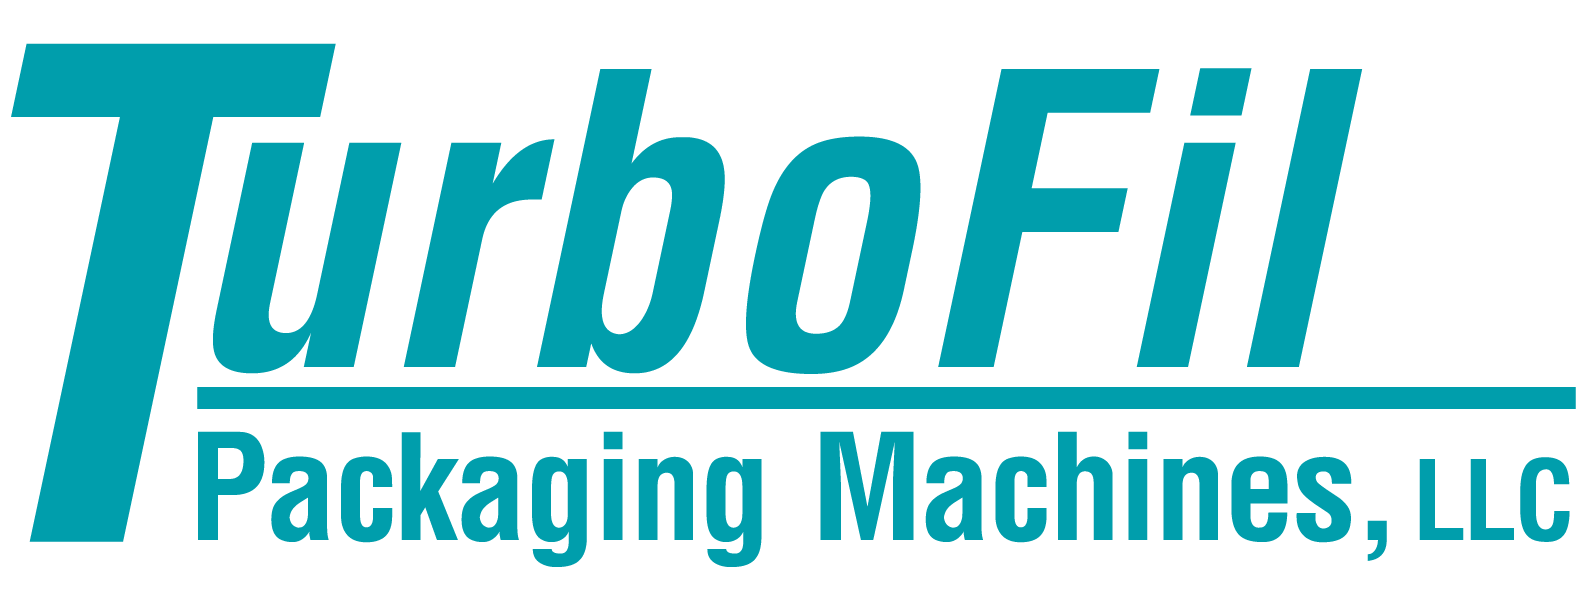 TurboFil Packaging Machines logo